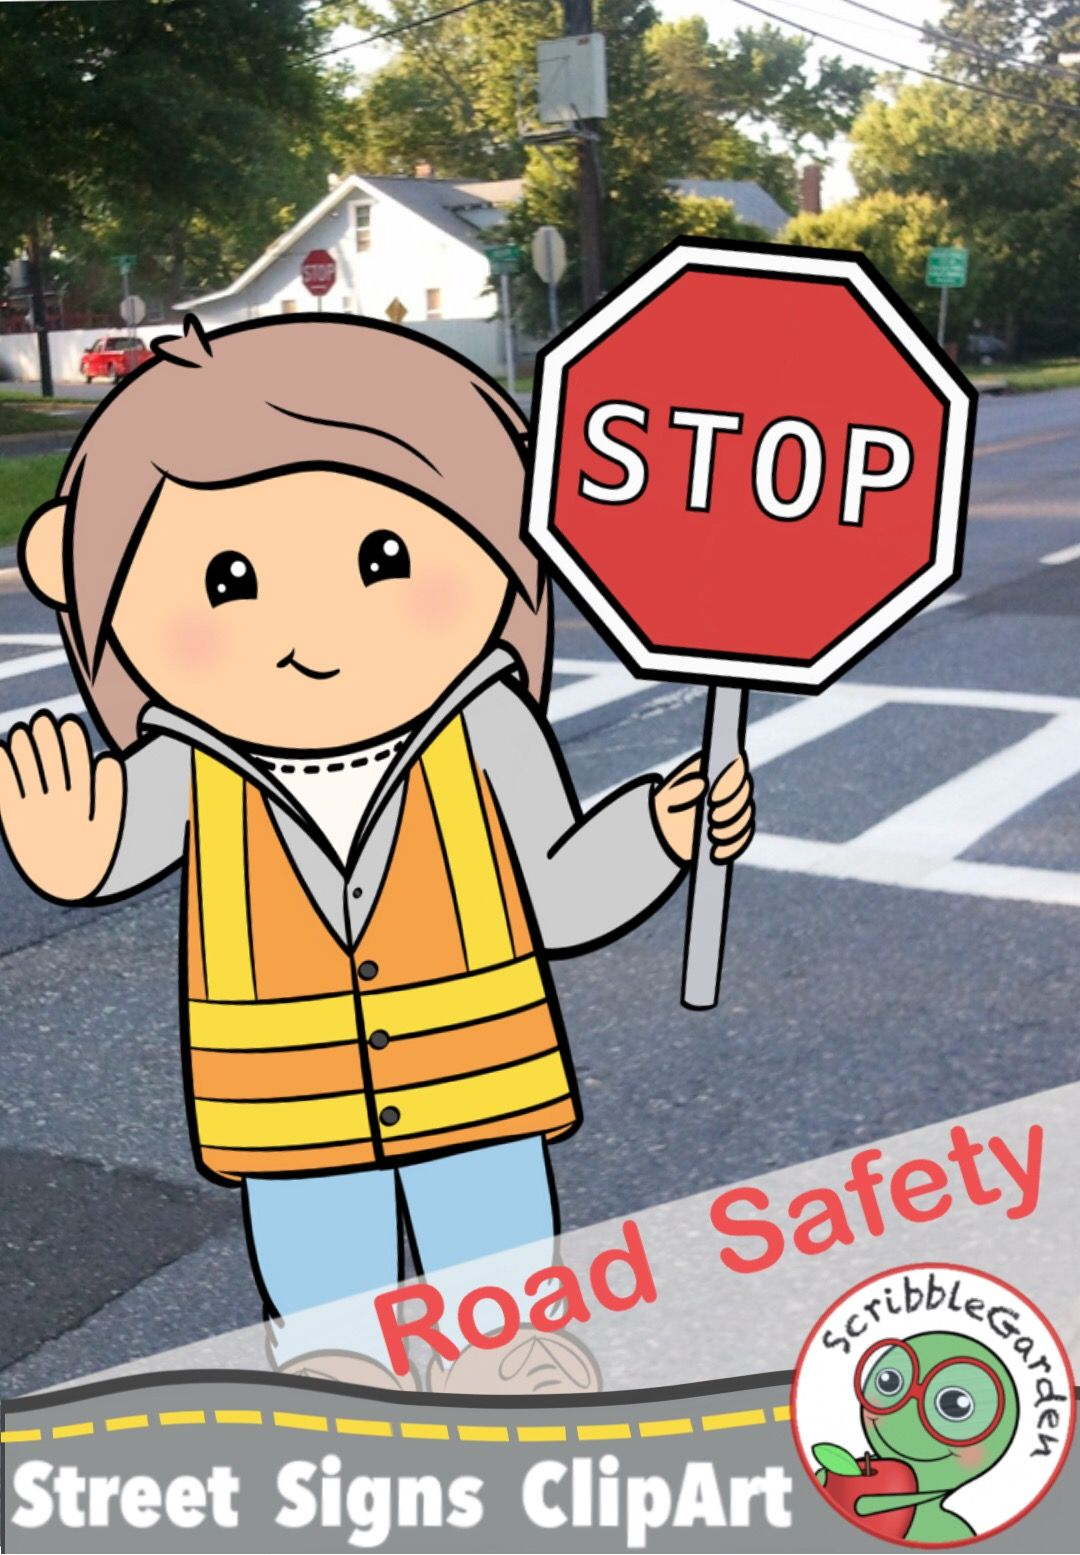 Road Safety Street Signs ClipArt Street signs, Clip art